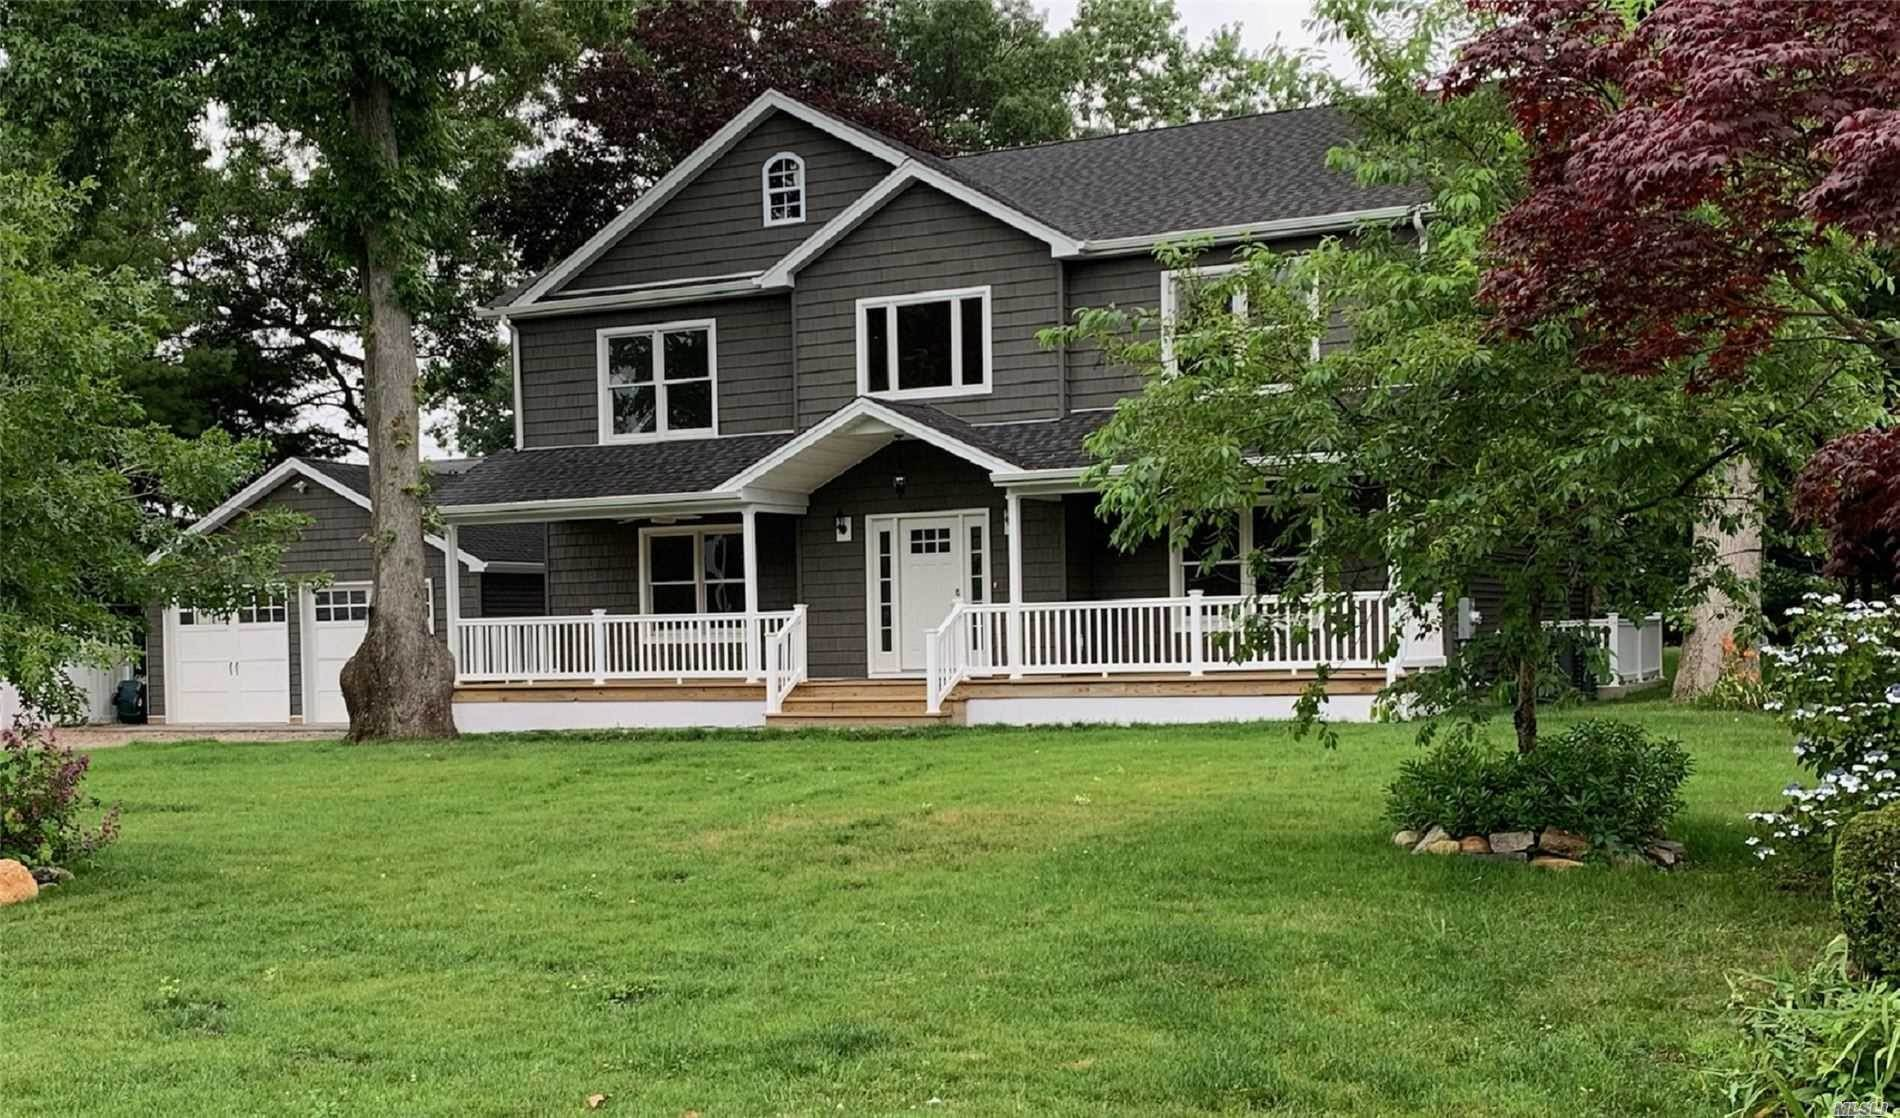 Residential for Sale at 429 3rd Avenue, Bayport, NY 11705 Bayport, New York 11705 United States